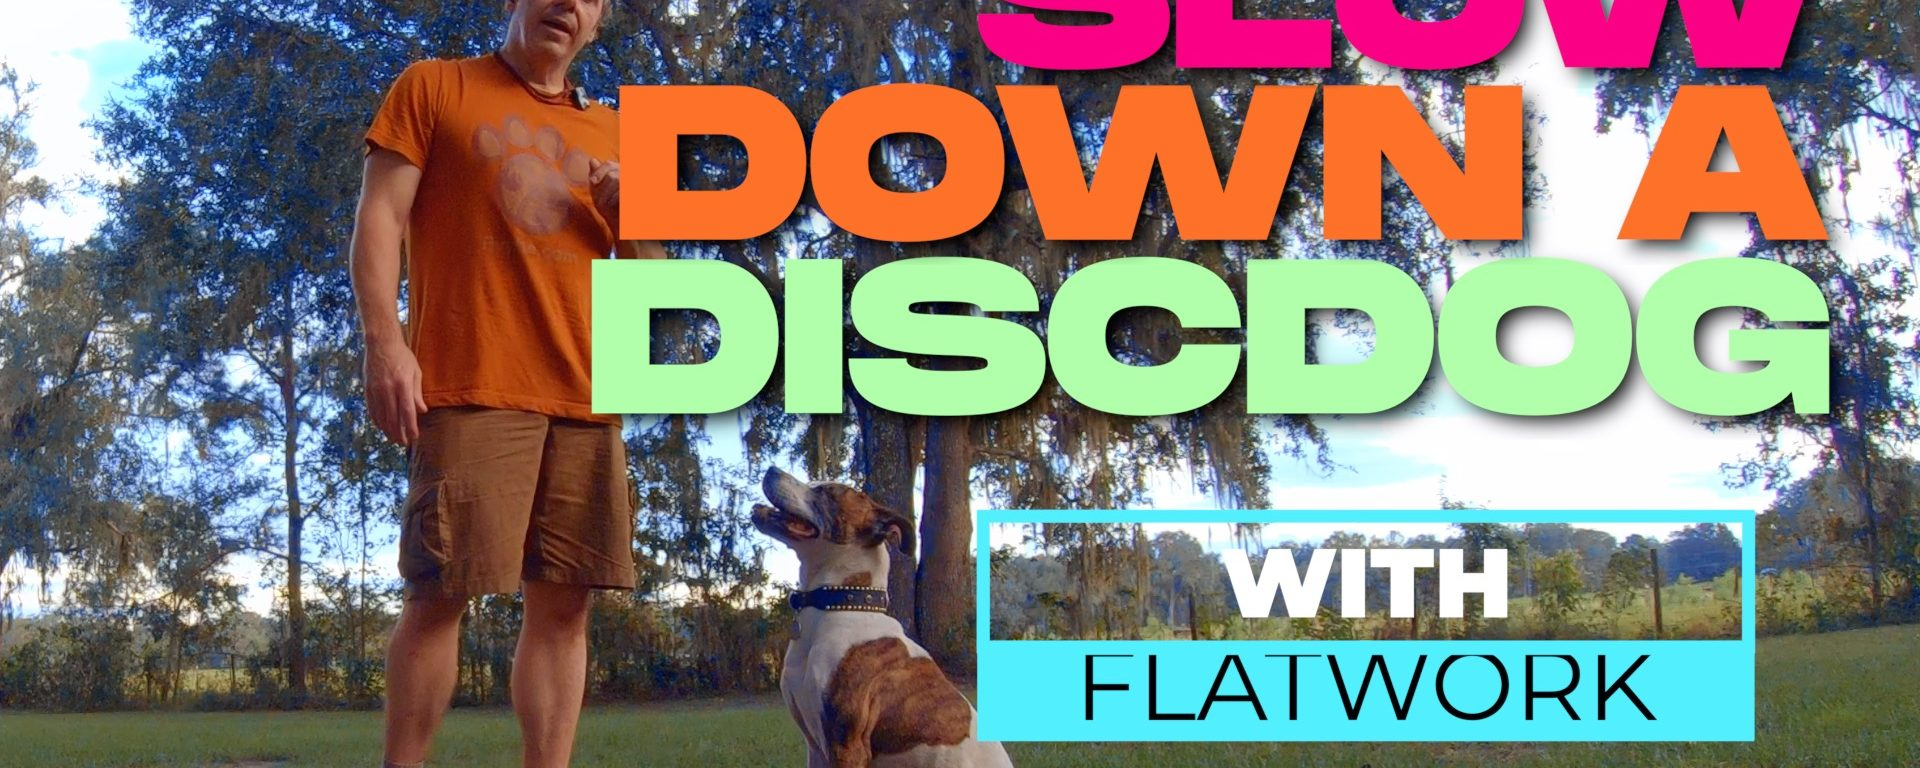 Slowing Down a Disc Dog with Team Movement & Flatwork